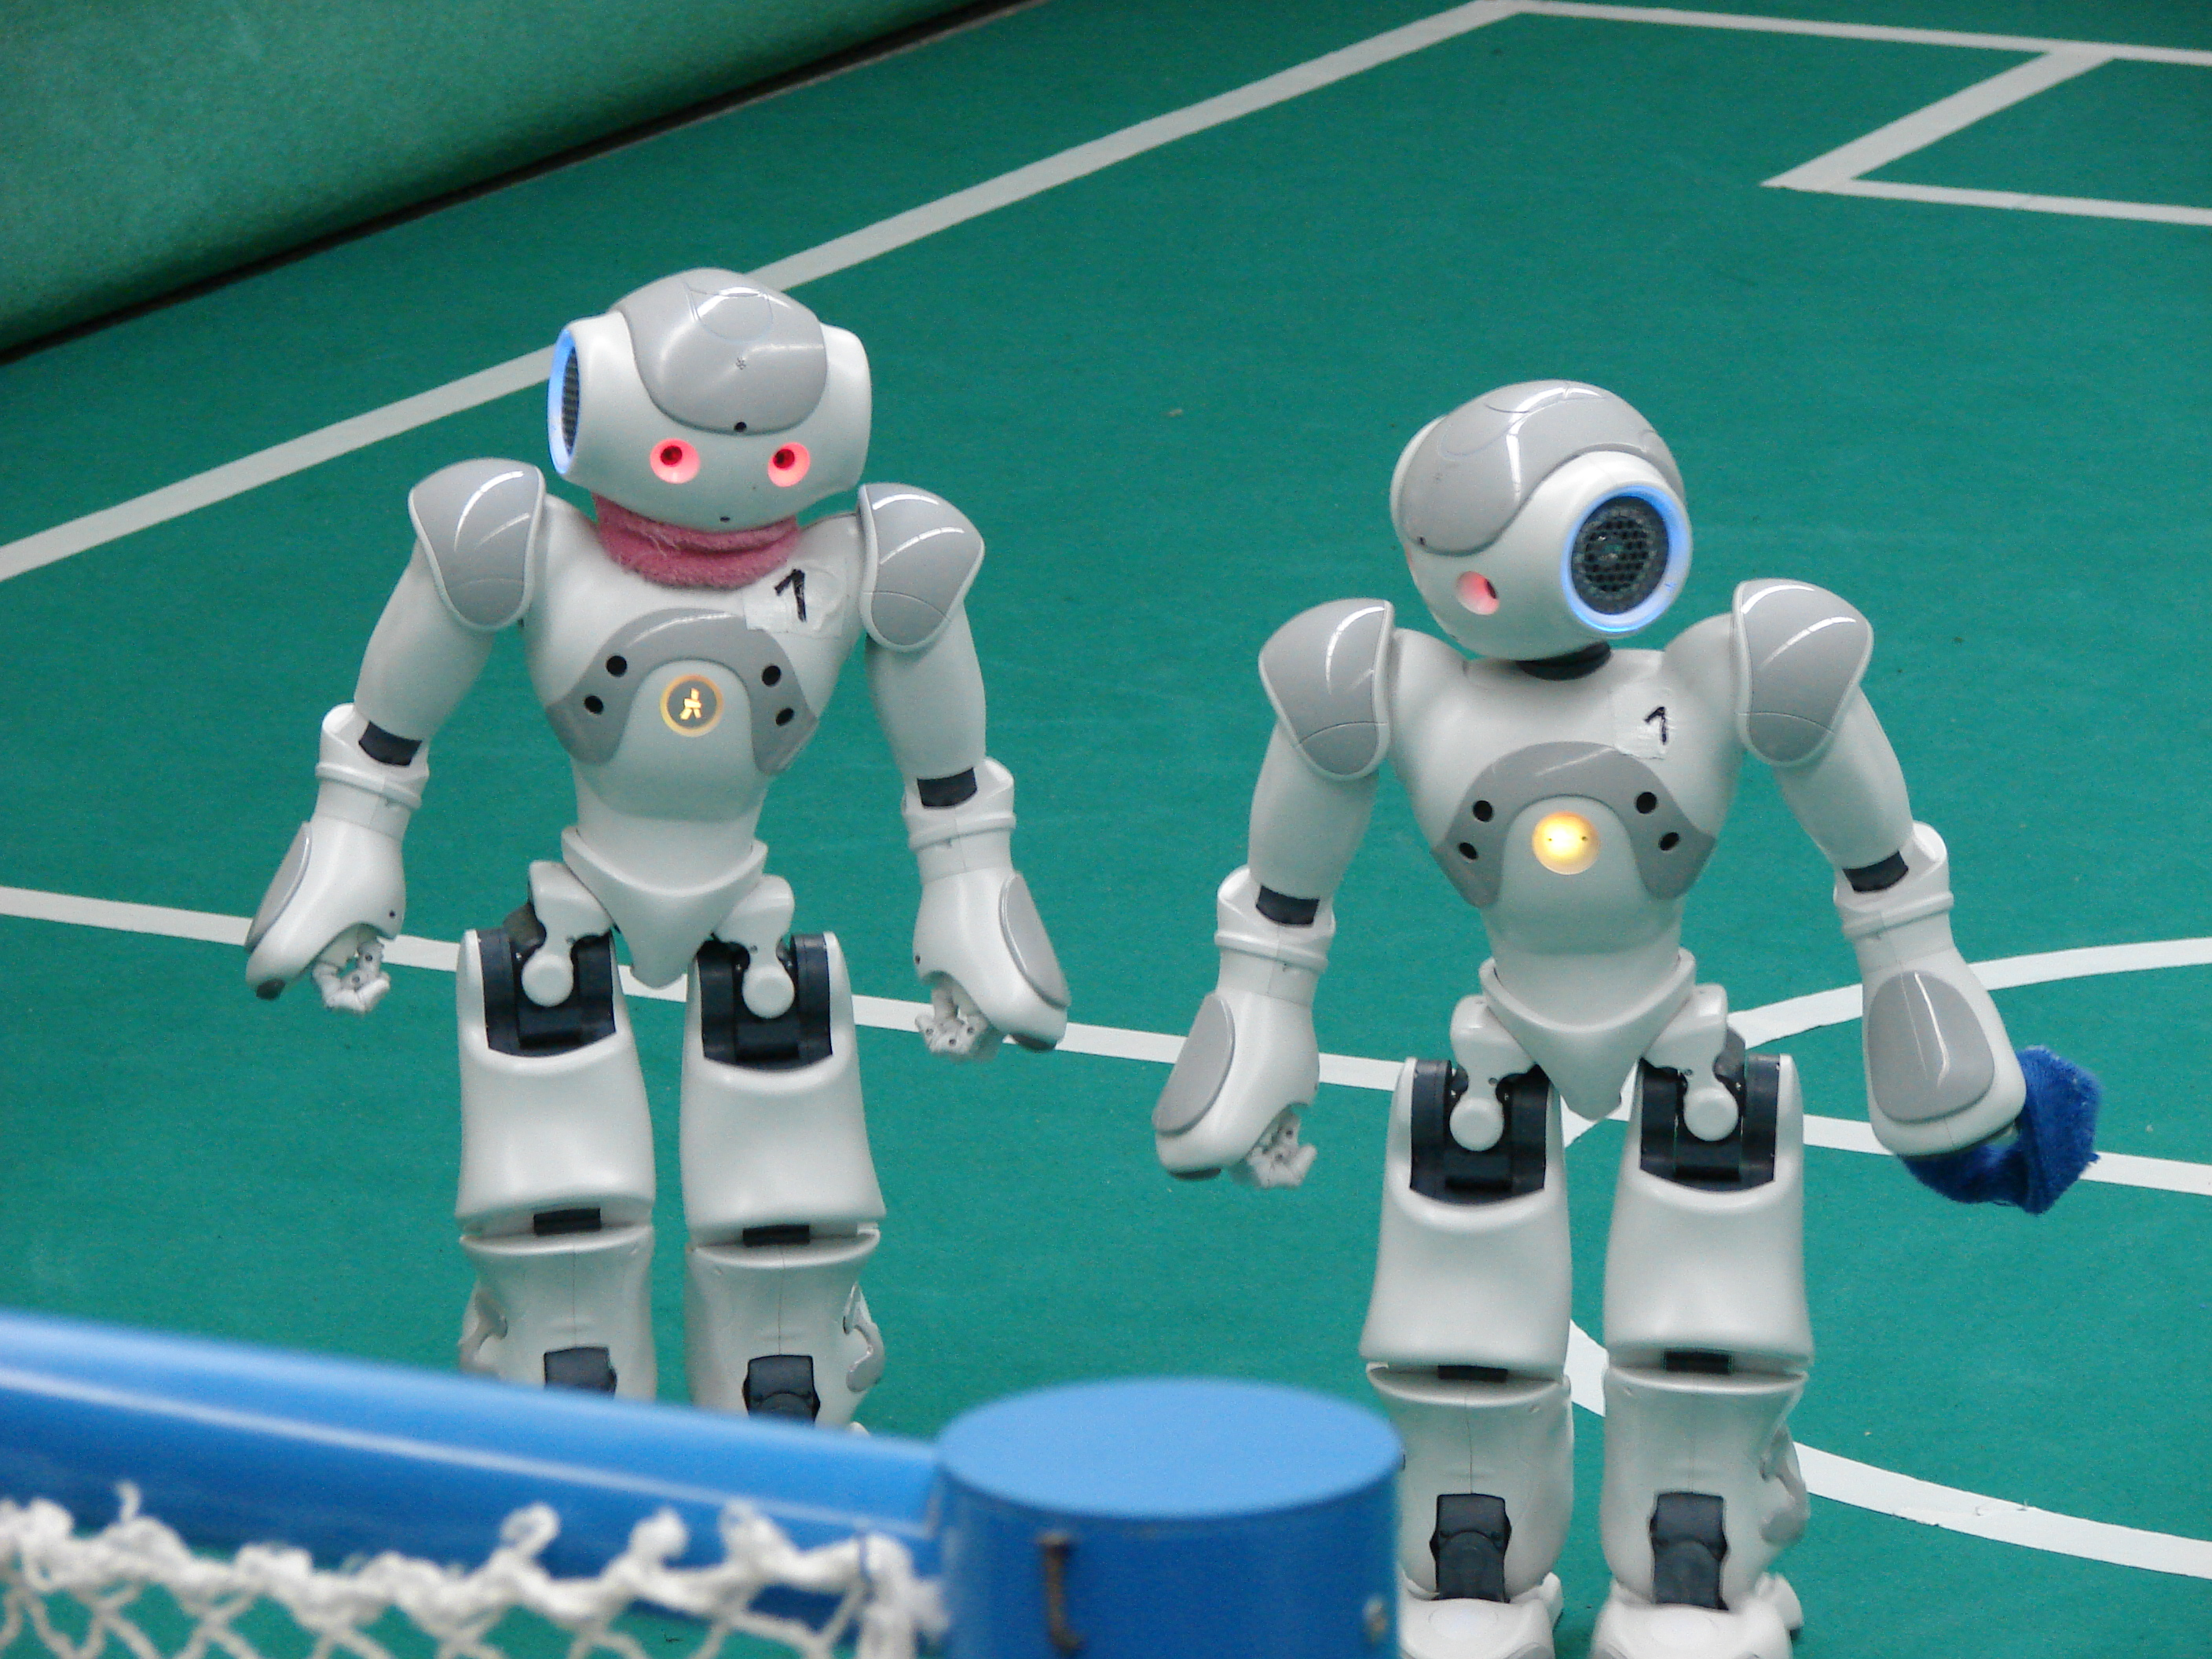 Robots in the RoboCup